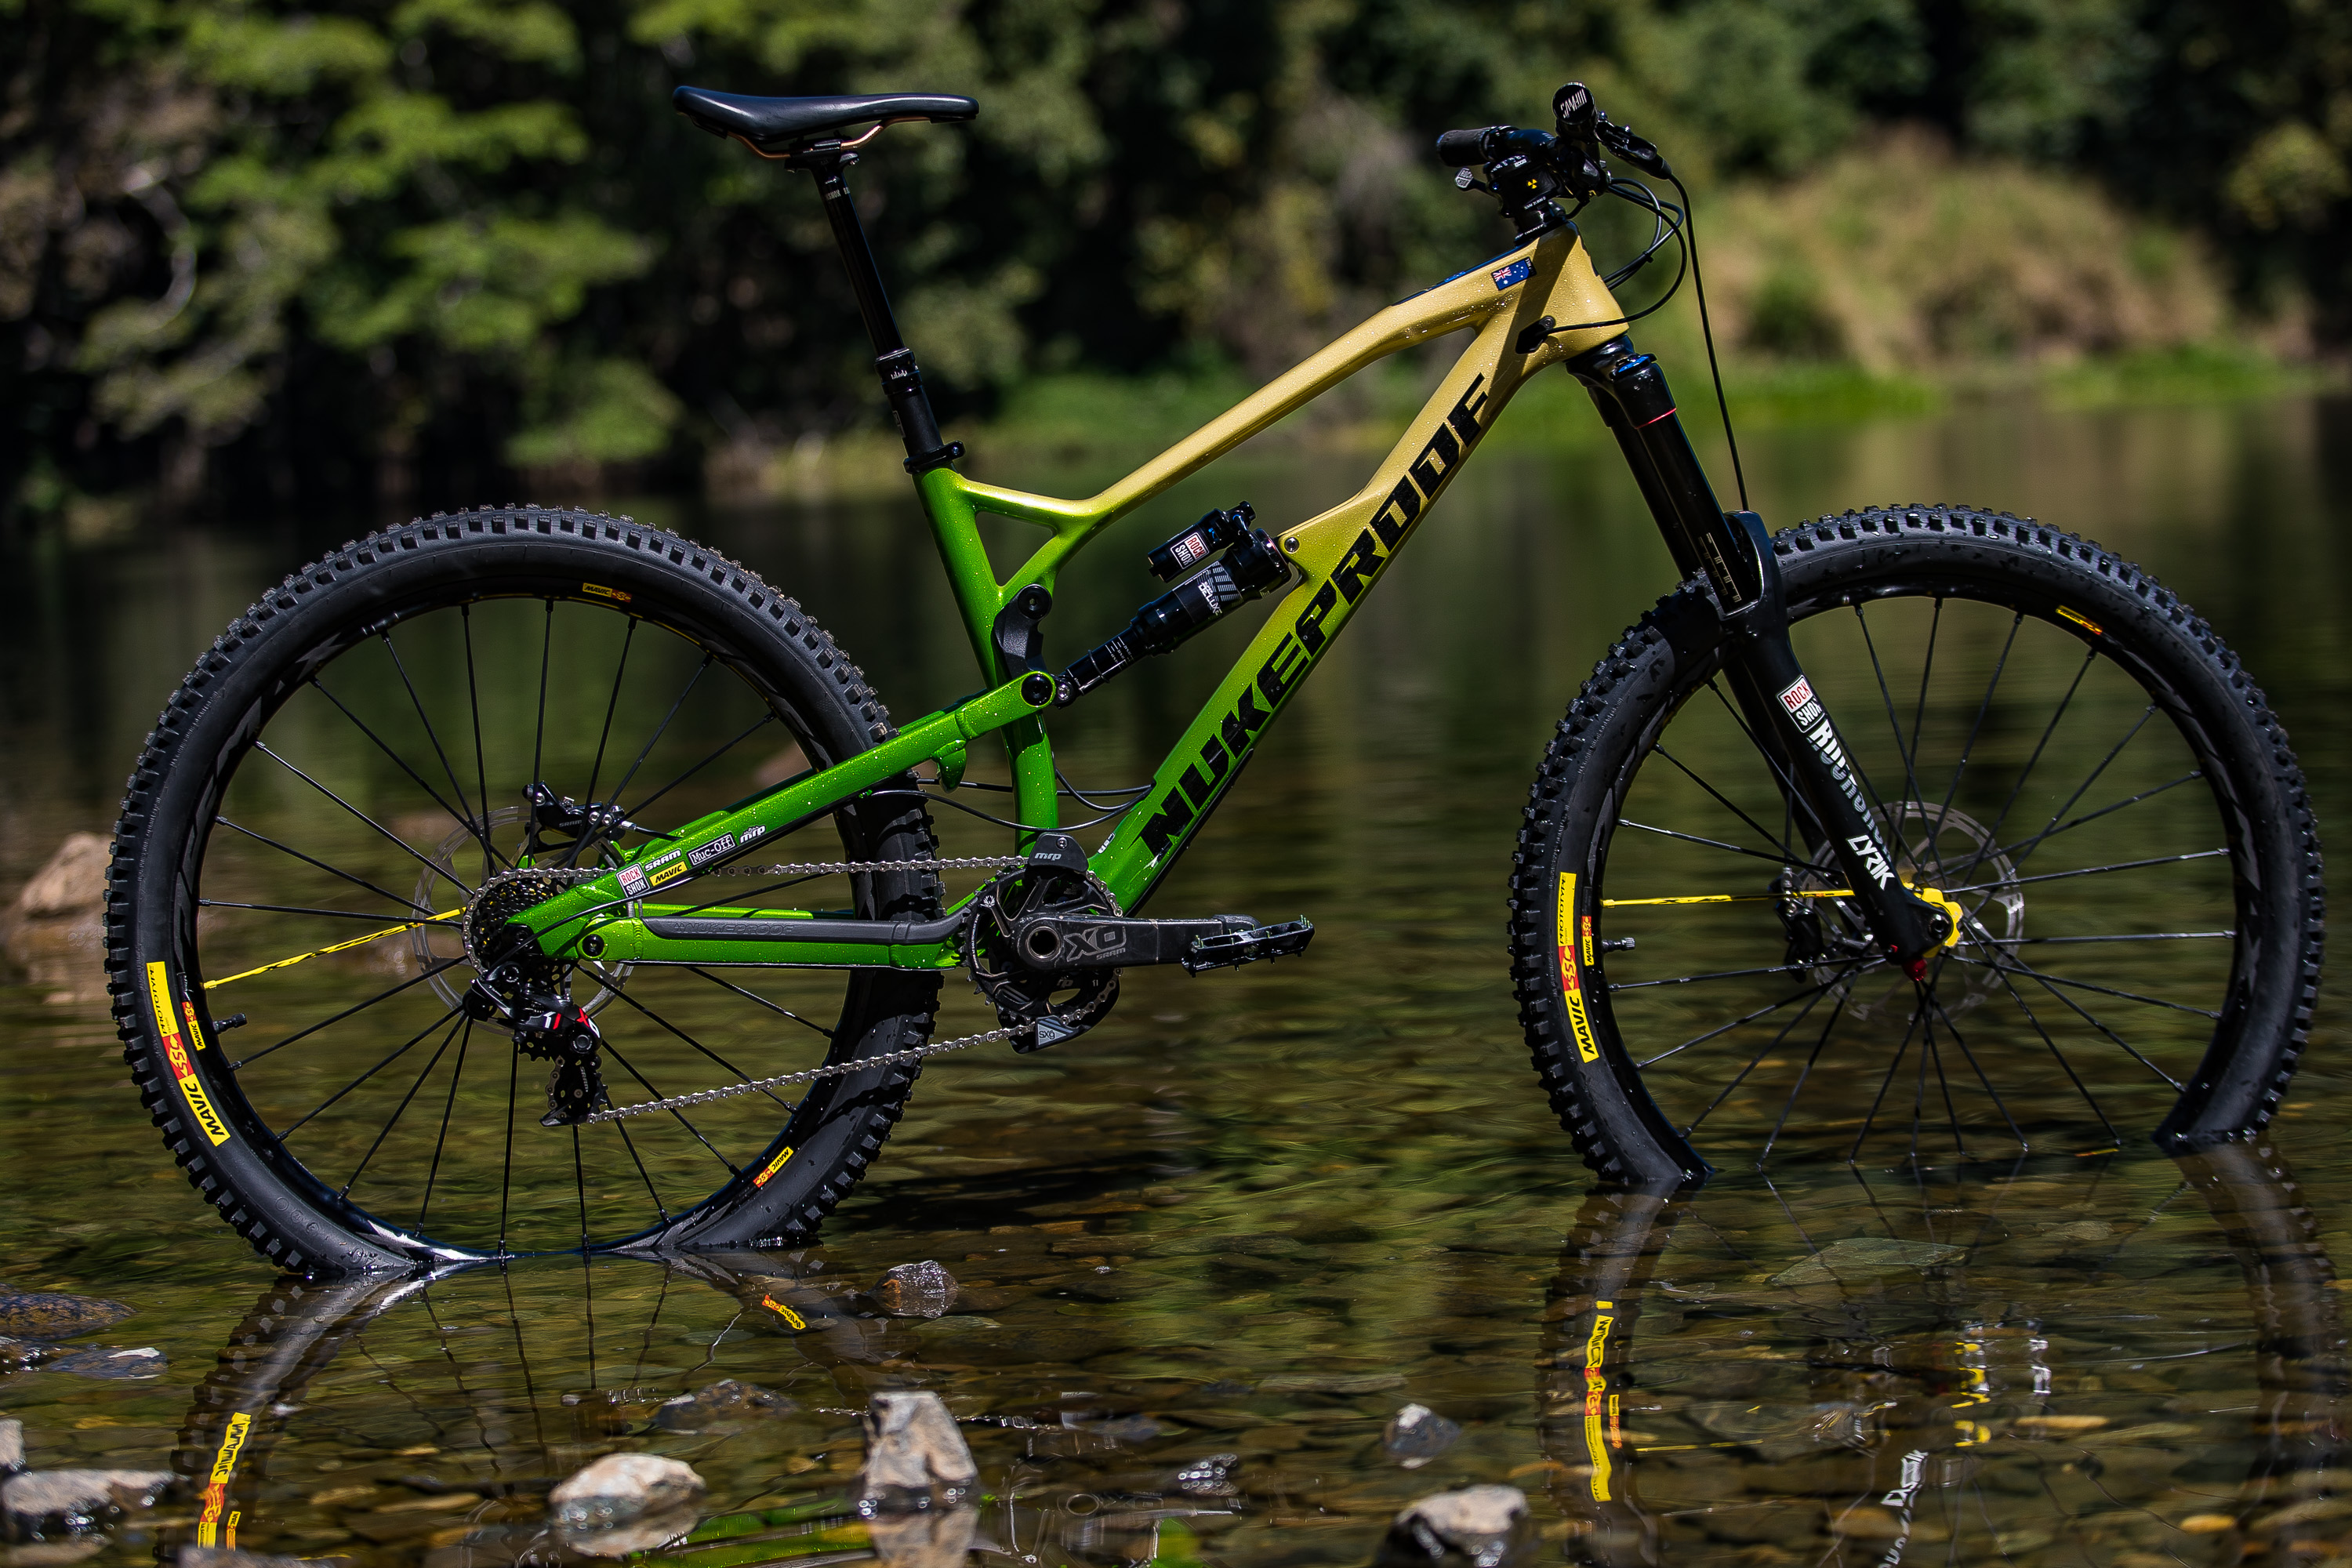 The custom painted Nukeproof Mega that Sam is going to be racing at Worlds this year. Photo: Fraser Britton